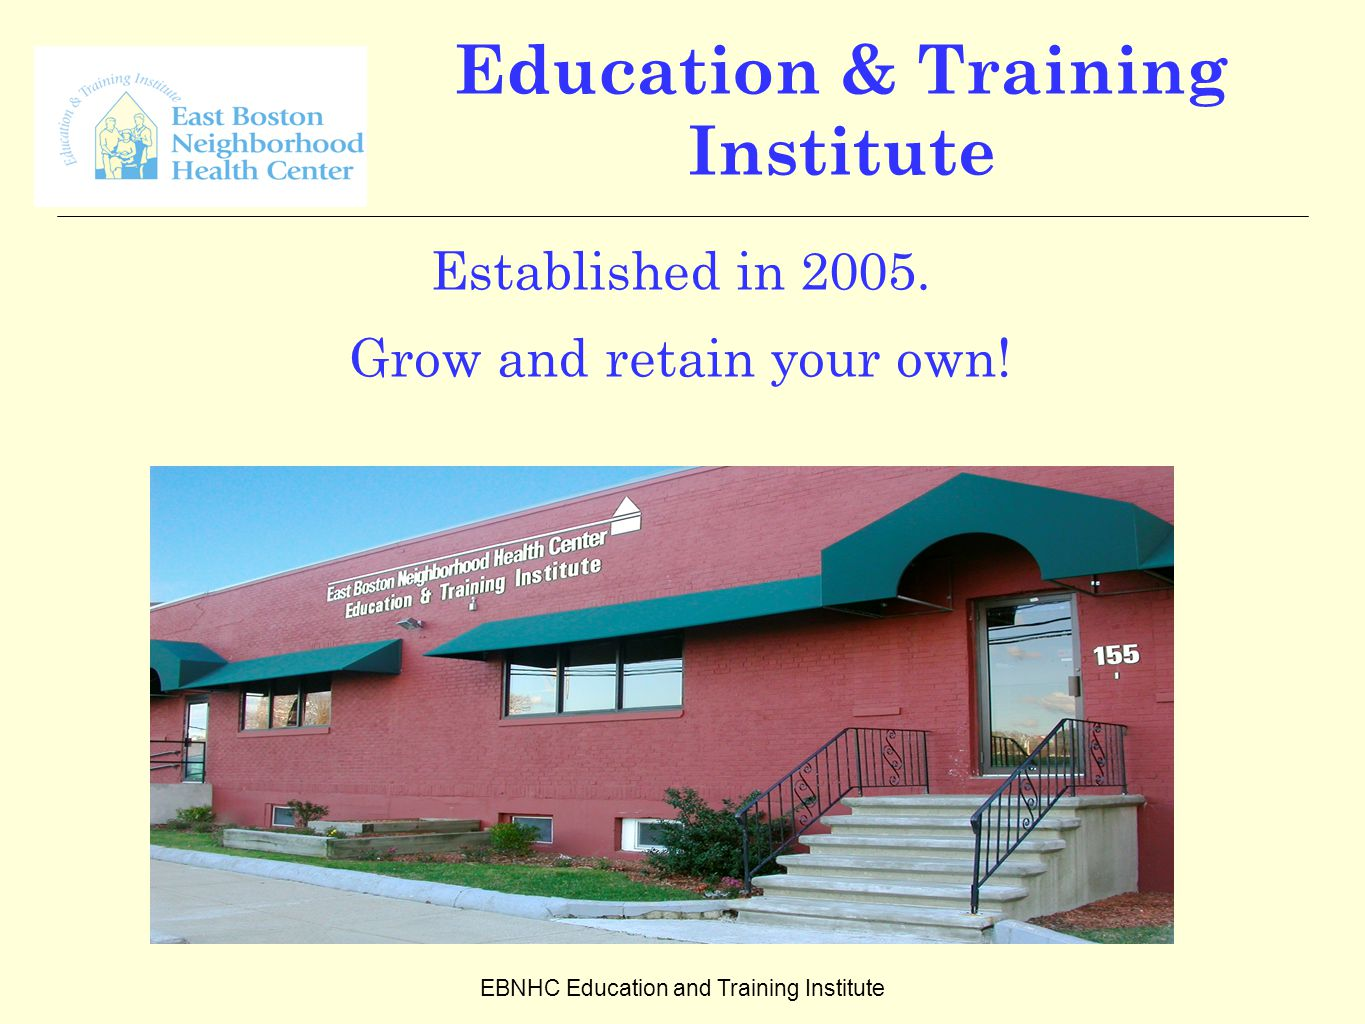 EBNHC Education and Training Institute Education & Training Institute Established in 2005.